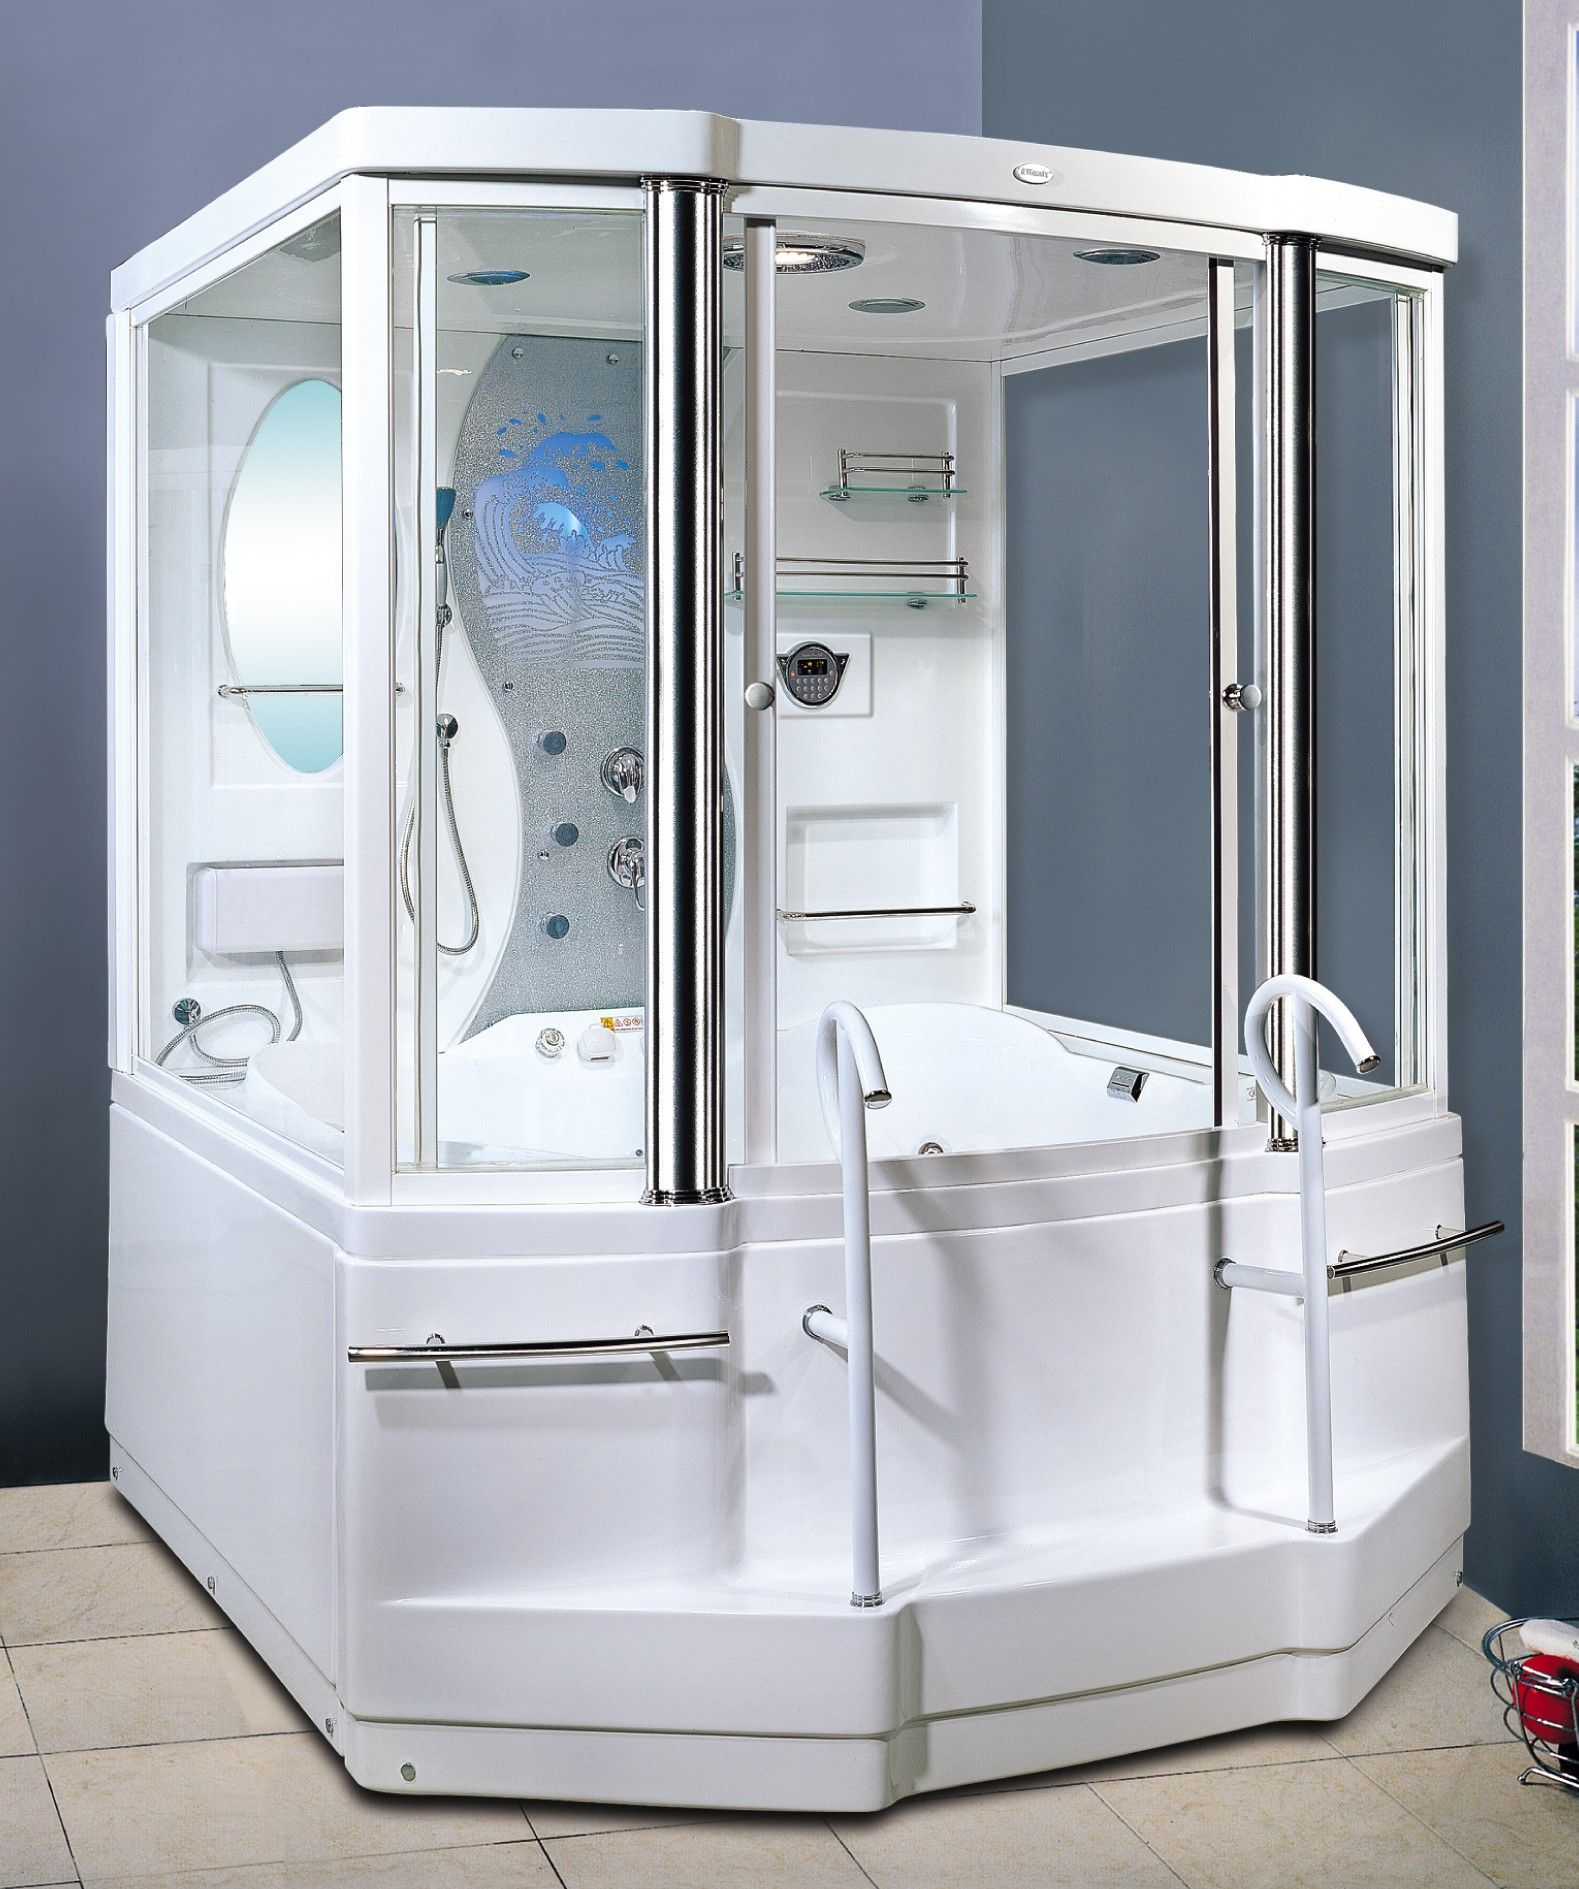 Awesome White Soaking Tub Shower Combination For High Tech - Home depot bathroom tubs for bathroom decor ideas